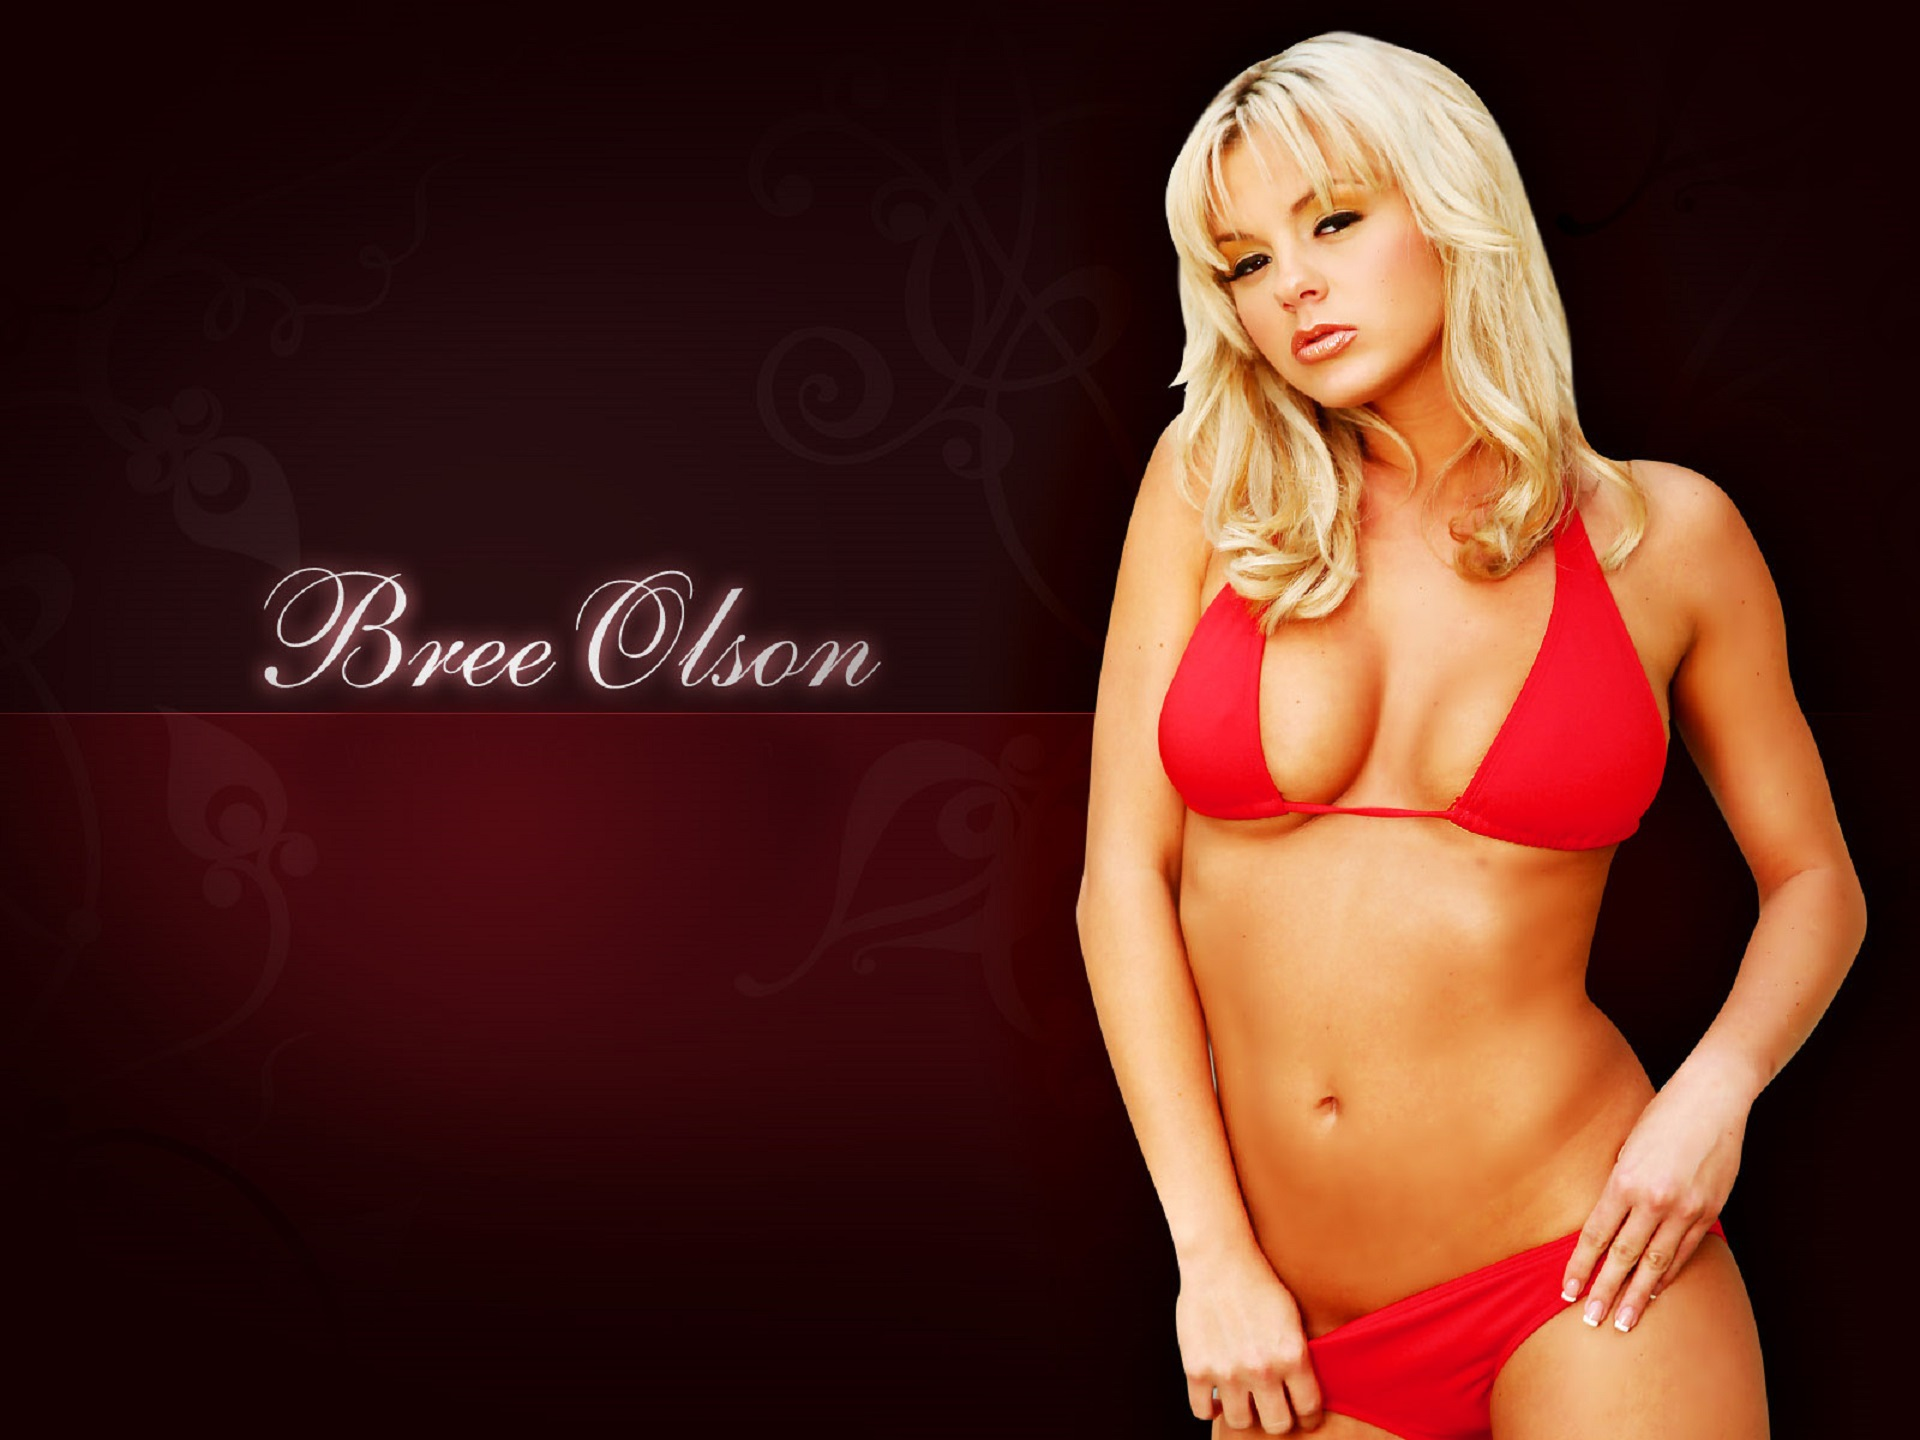 That's how bree olson big boobs